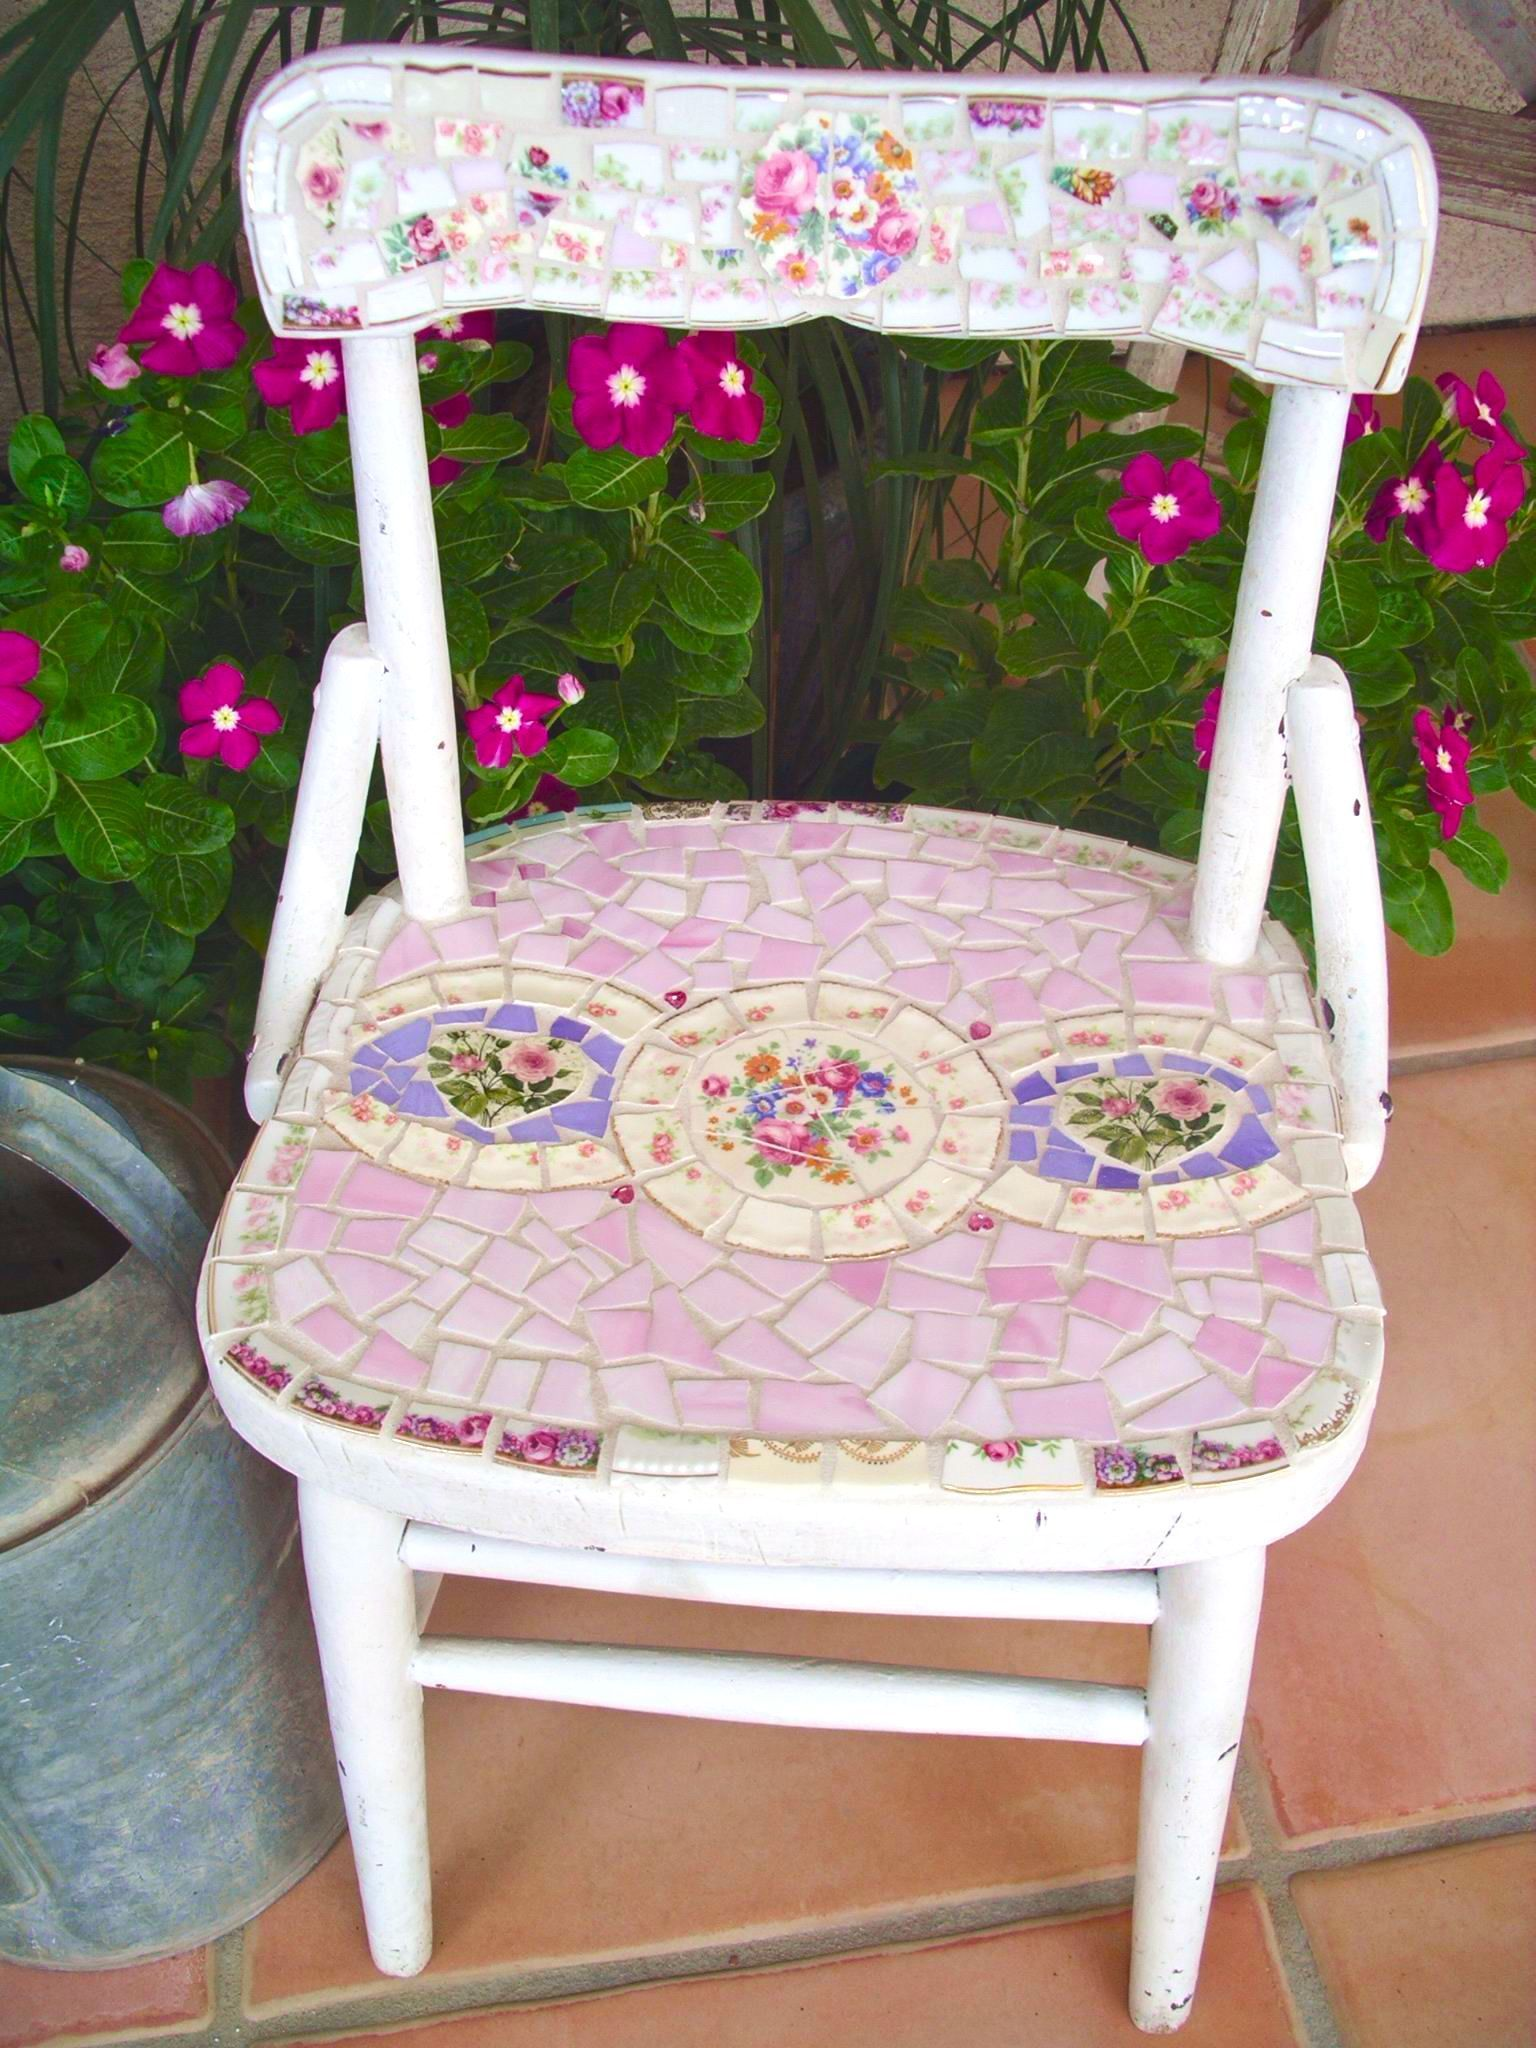 Mosaic old childus chair with stained glass and vintage china